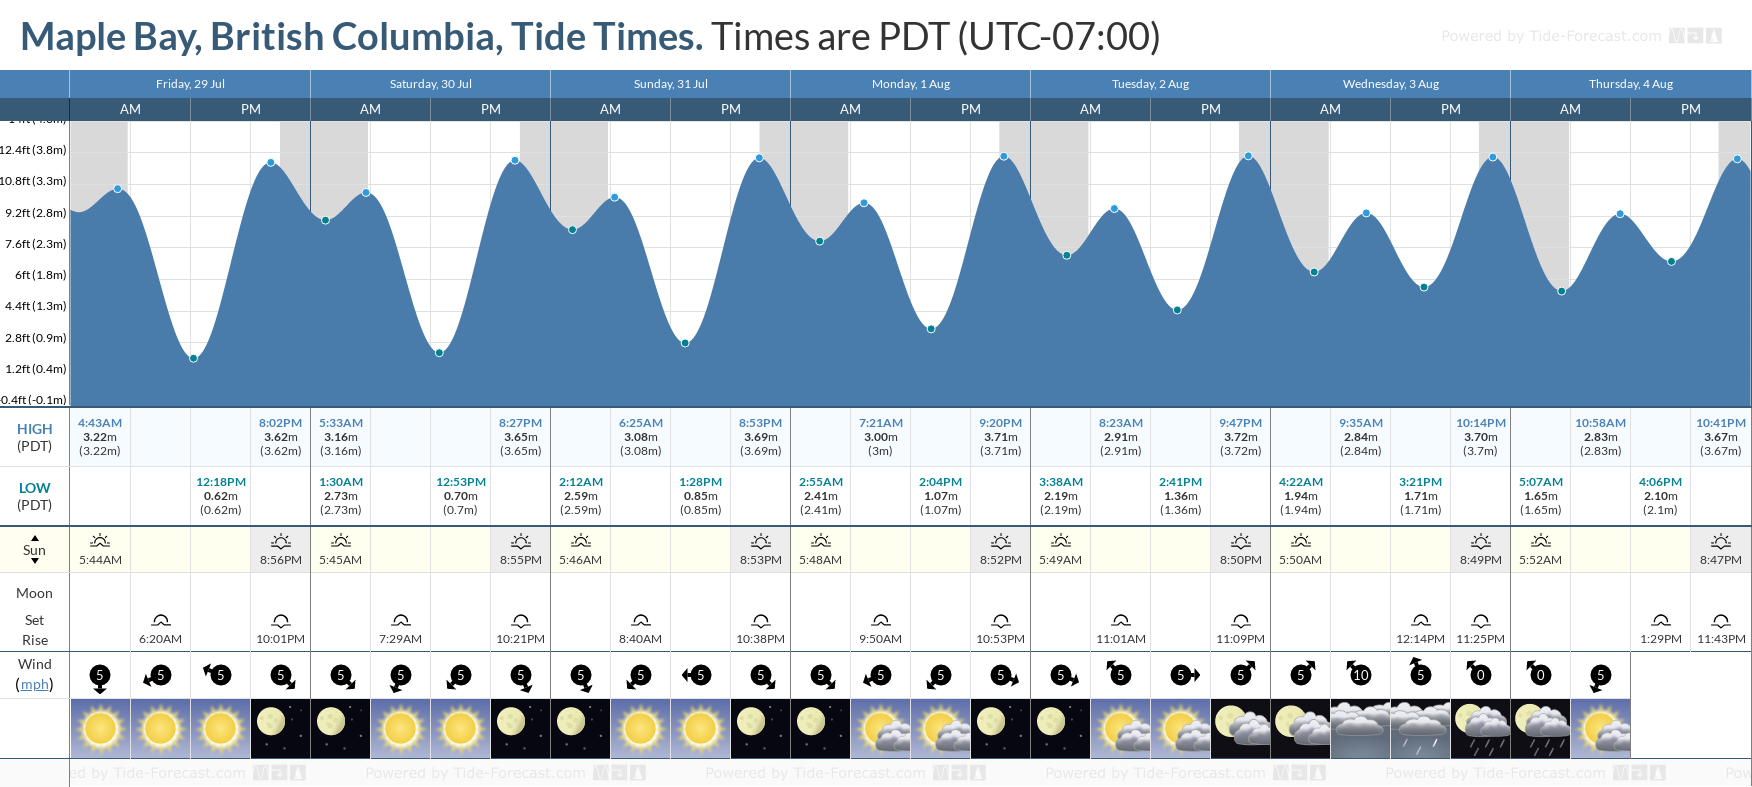 Maple Bay, British Columbia Tide Chart including high and low tide tide times for the next 7 days